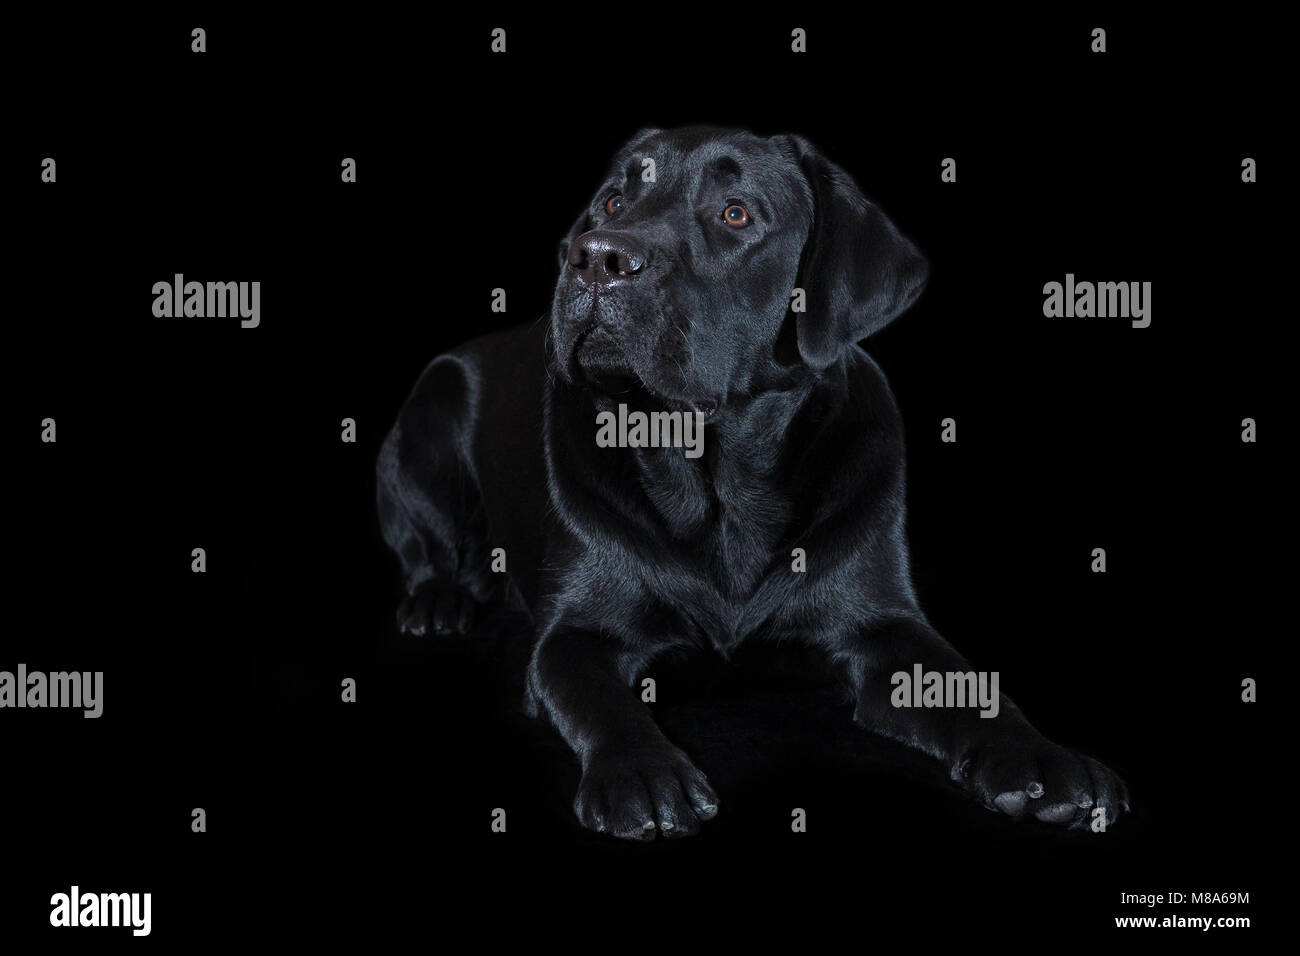 Beautiful young male dog labrador breed on black background - Stock Image